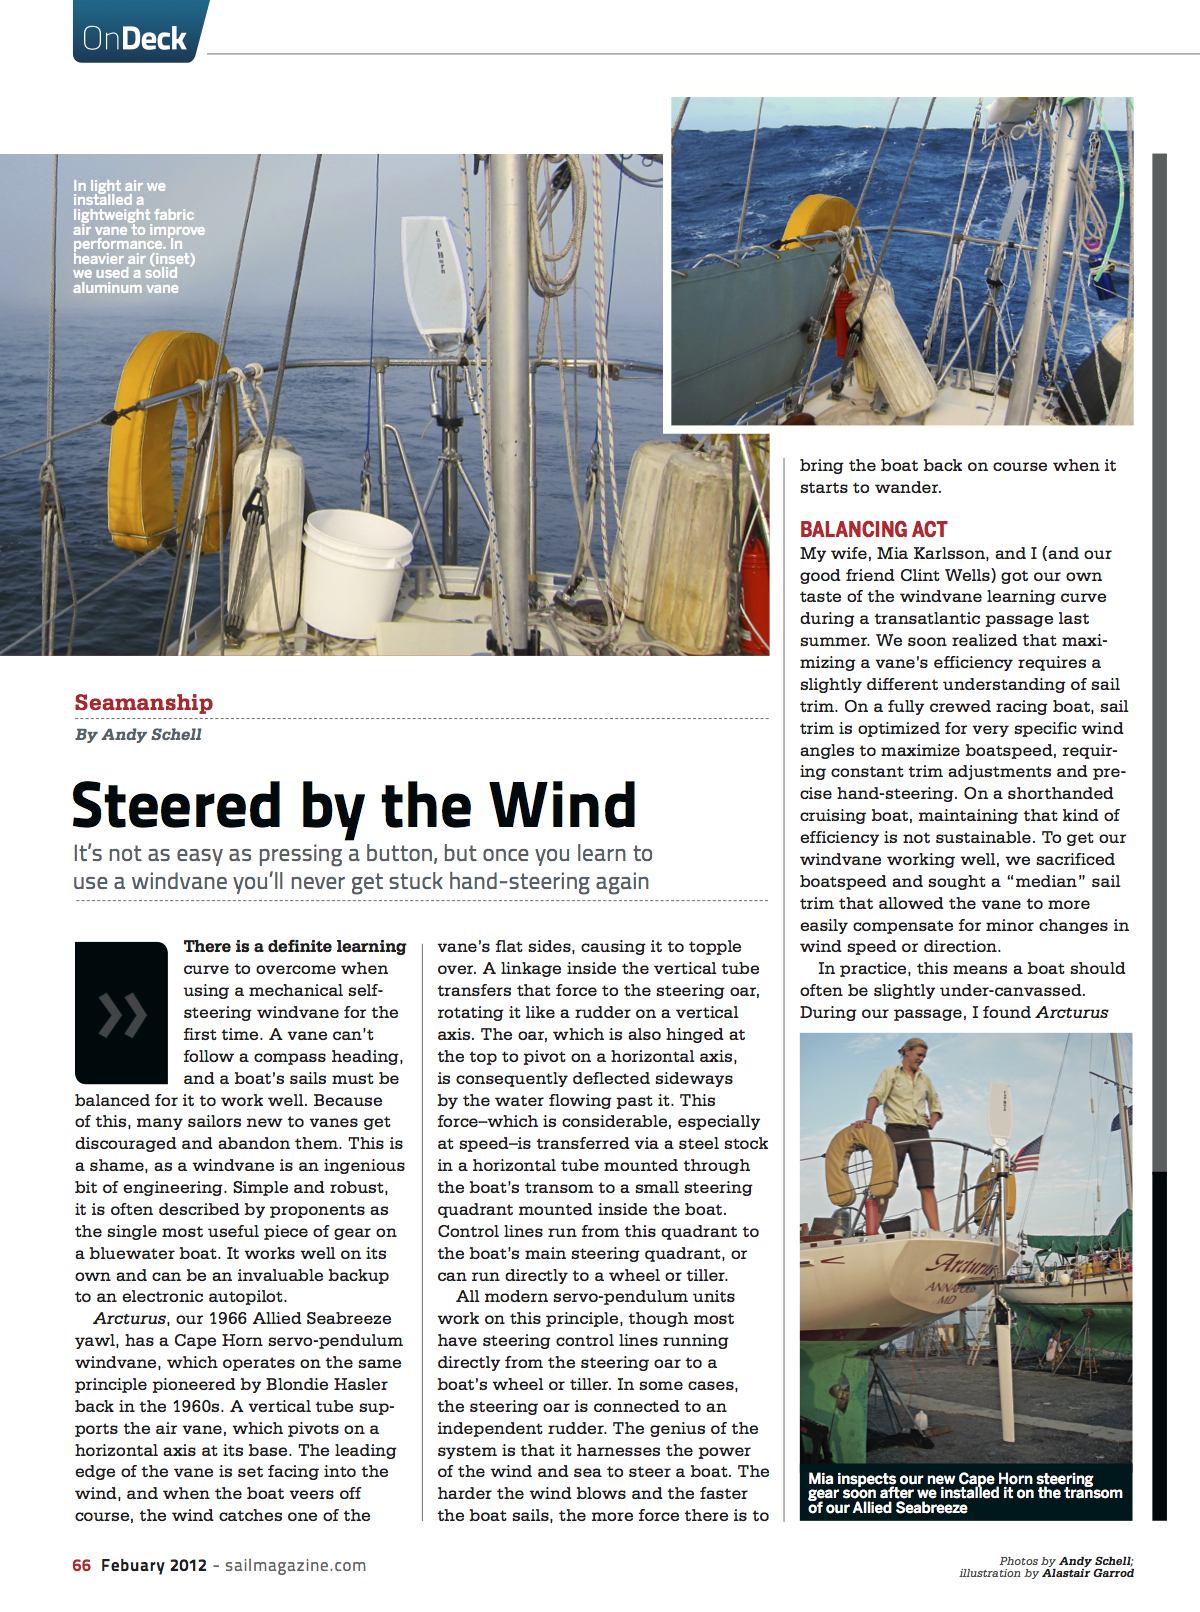 SAIL: Steered by the Wind